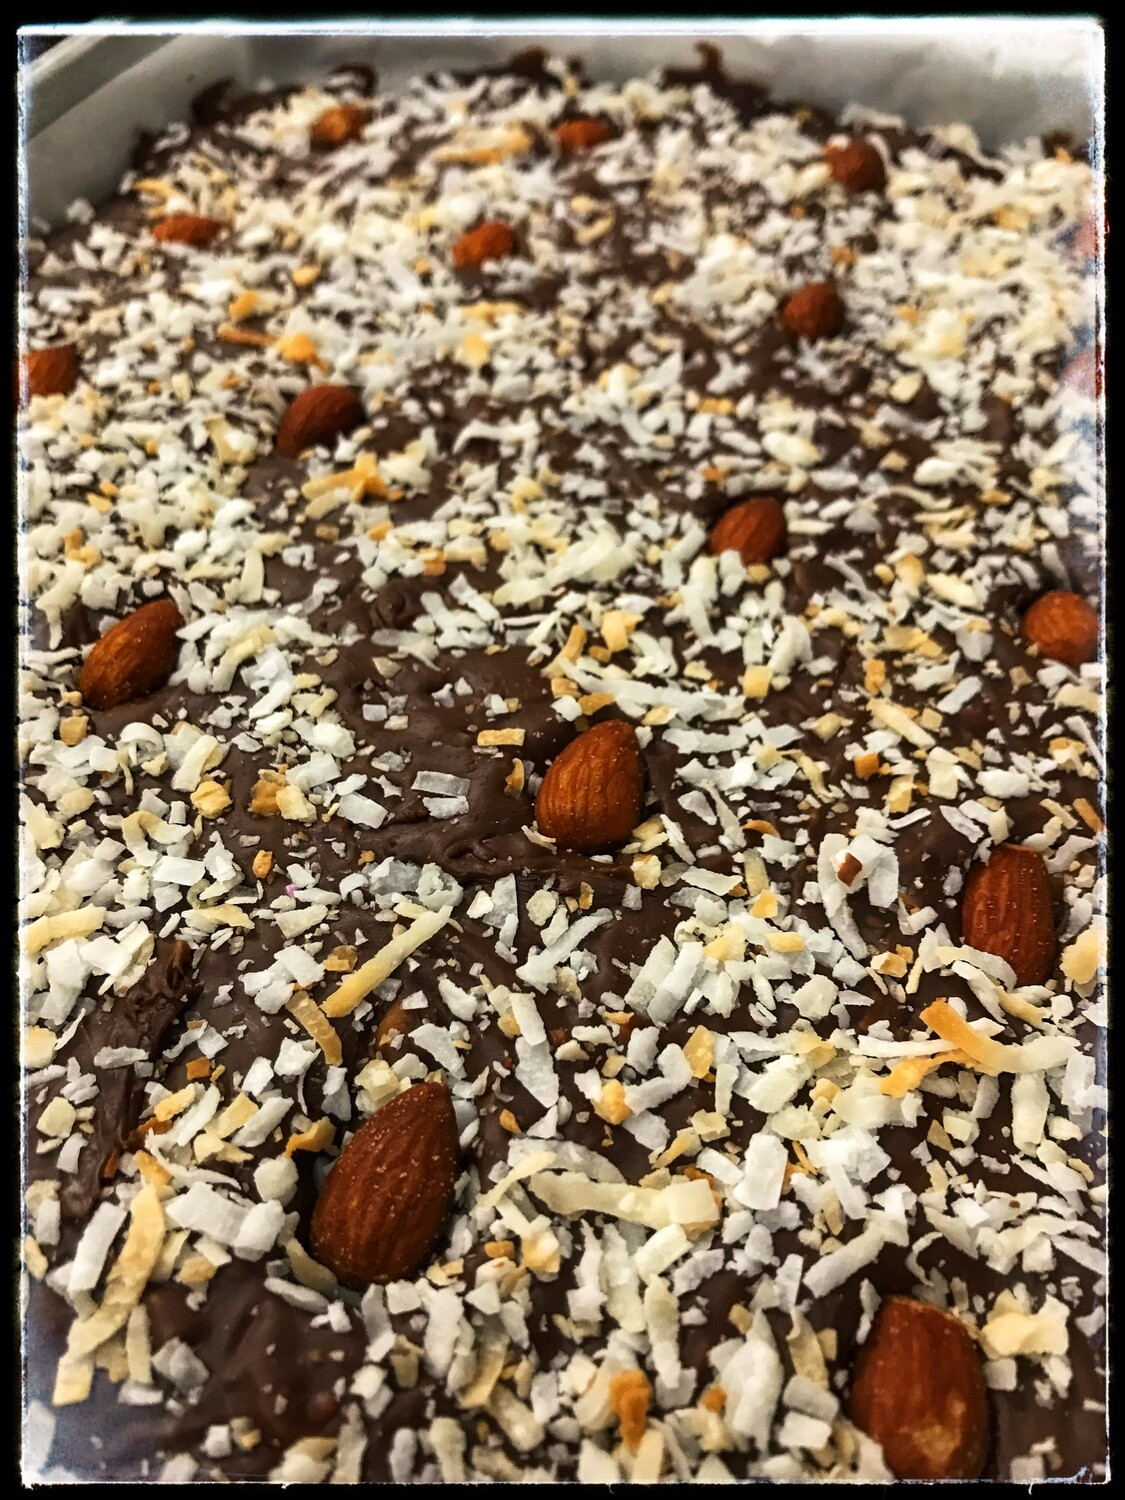 FUDGE OF THE MONTH - ALMOND JOY